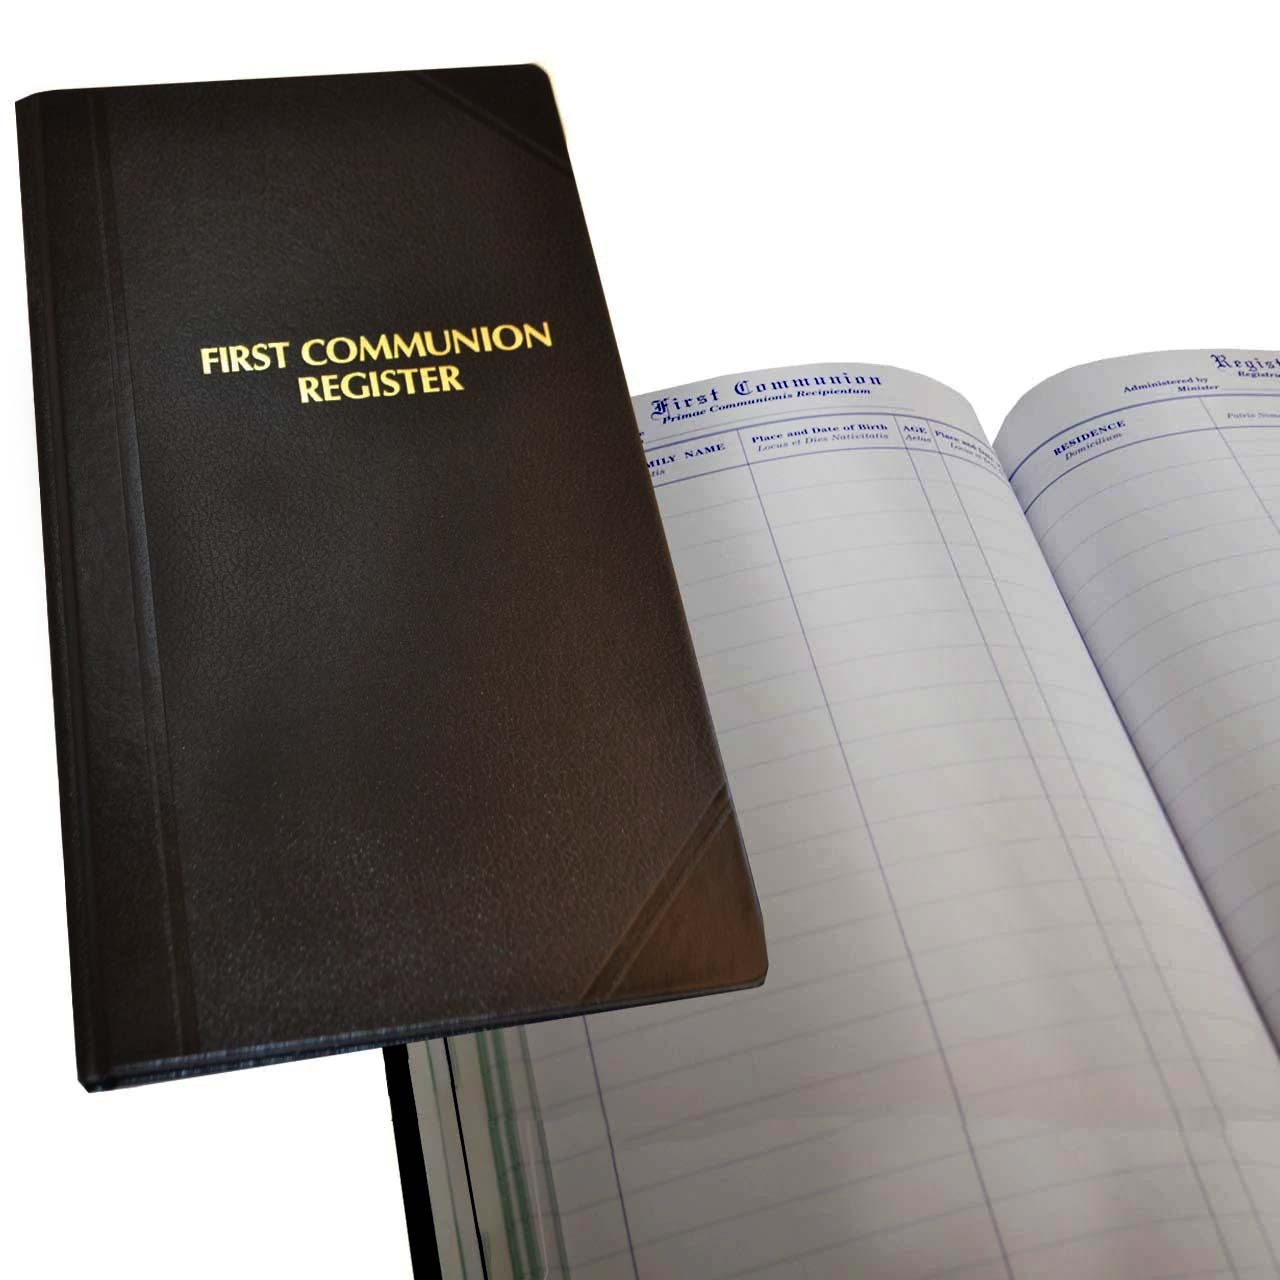 First Communion Register 1000 Entry